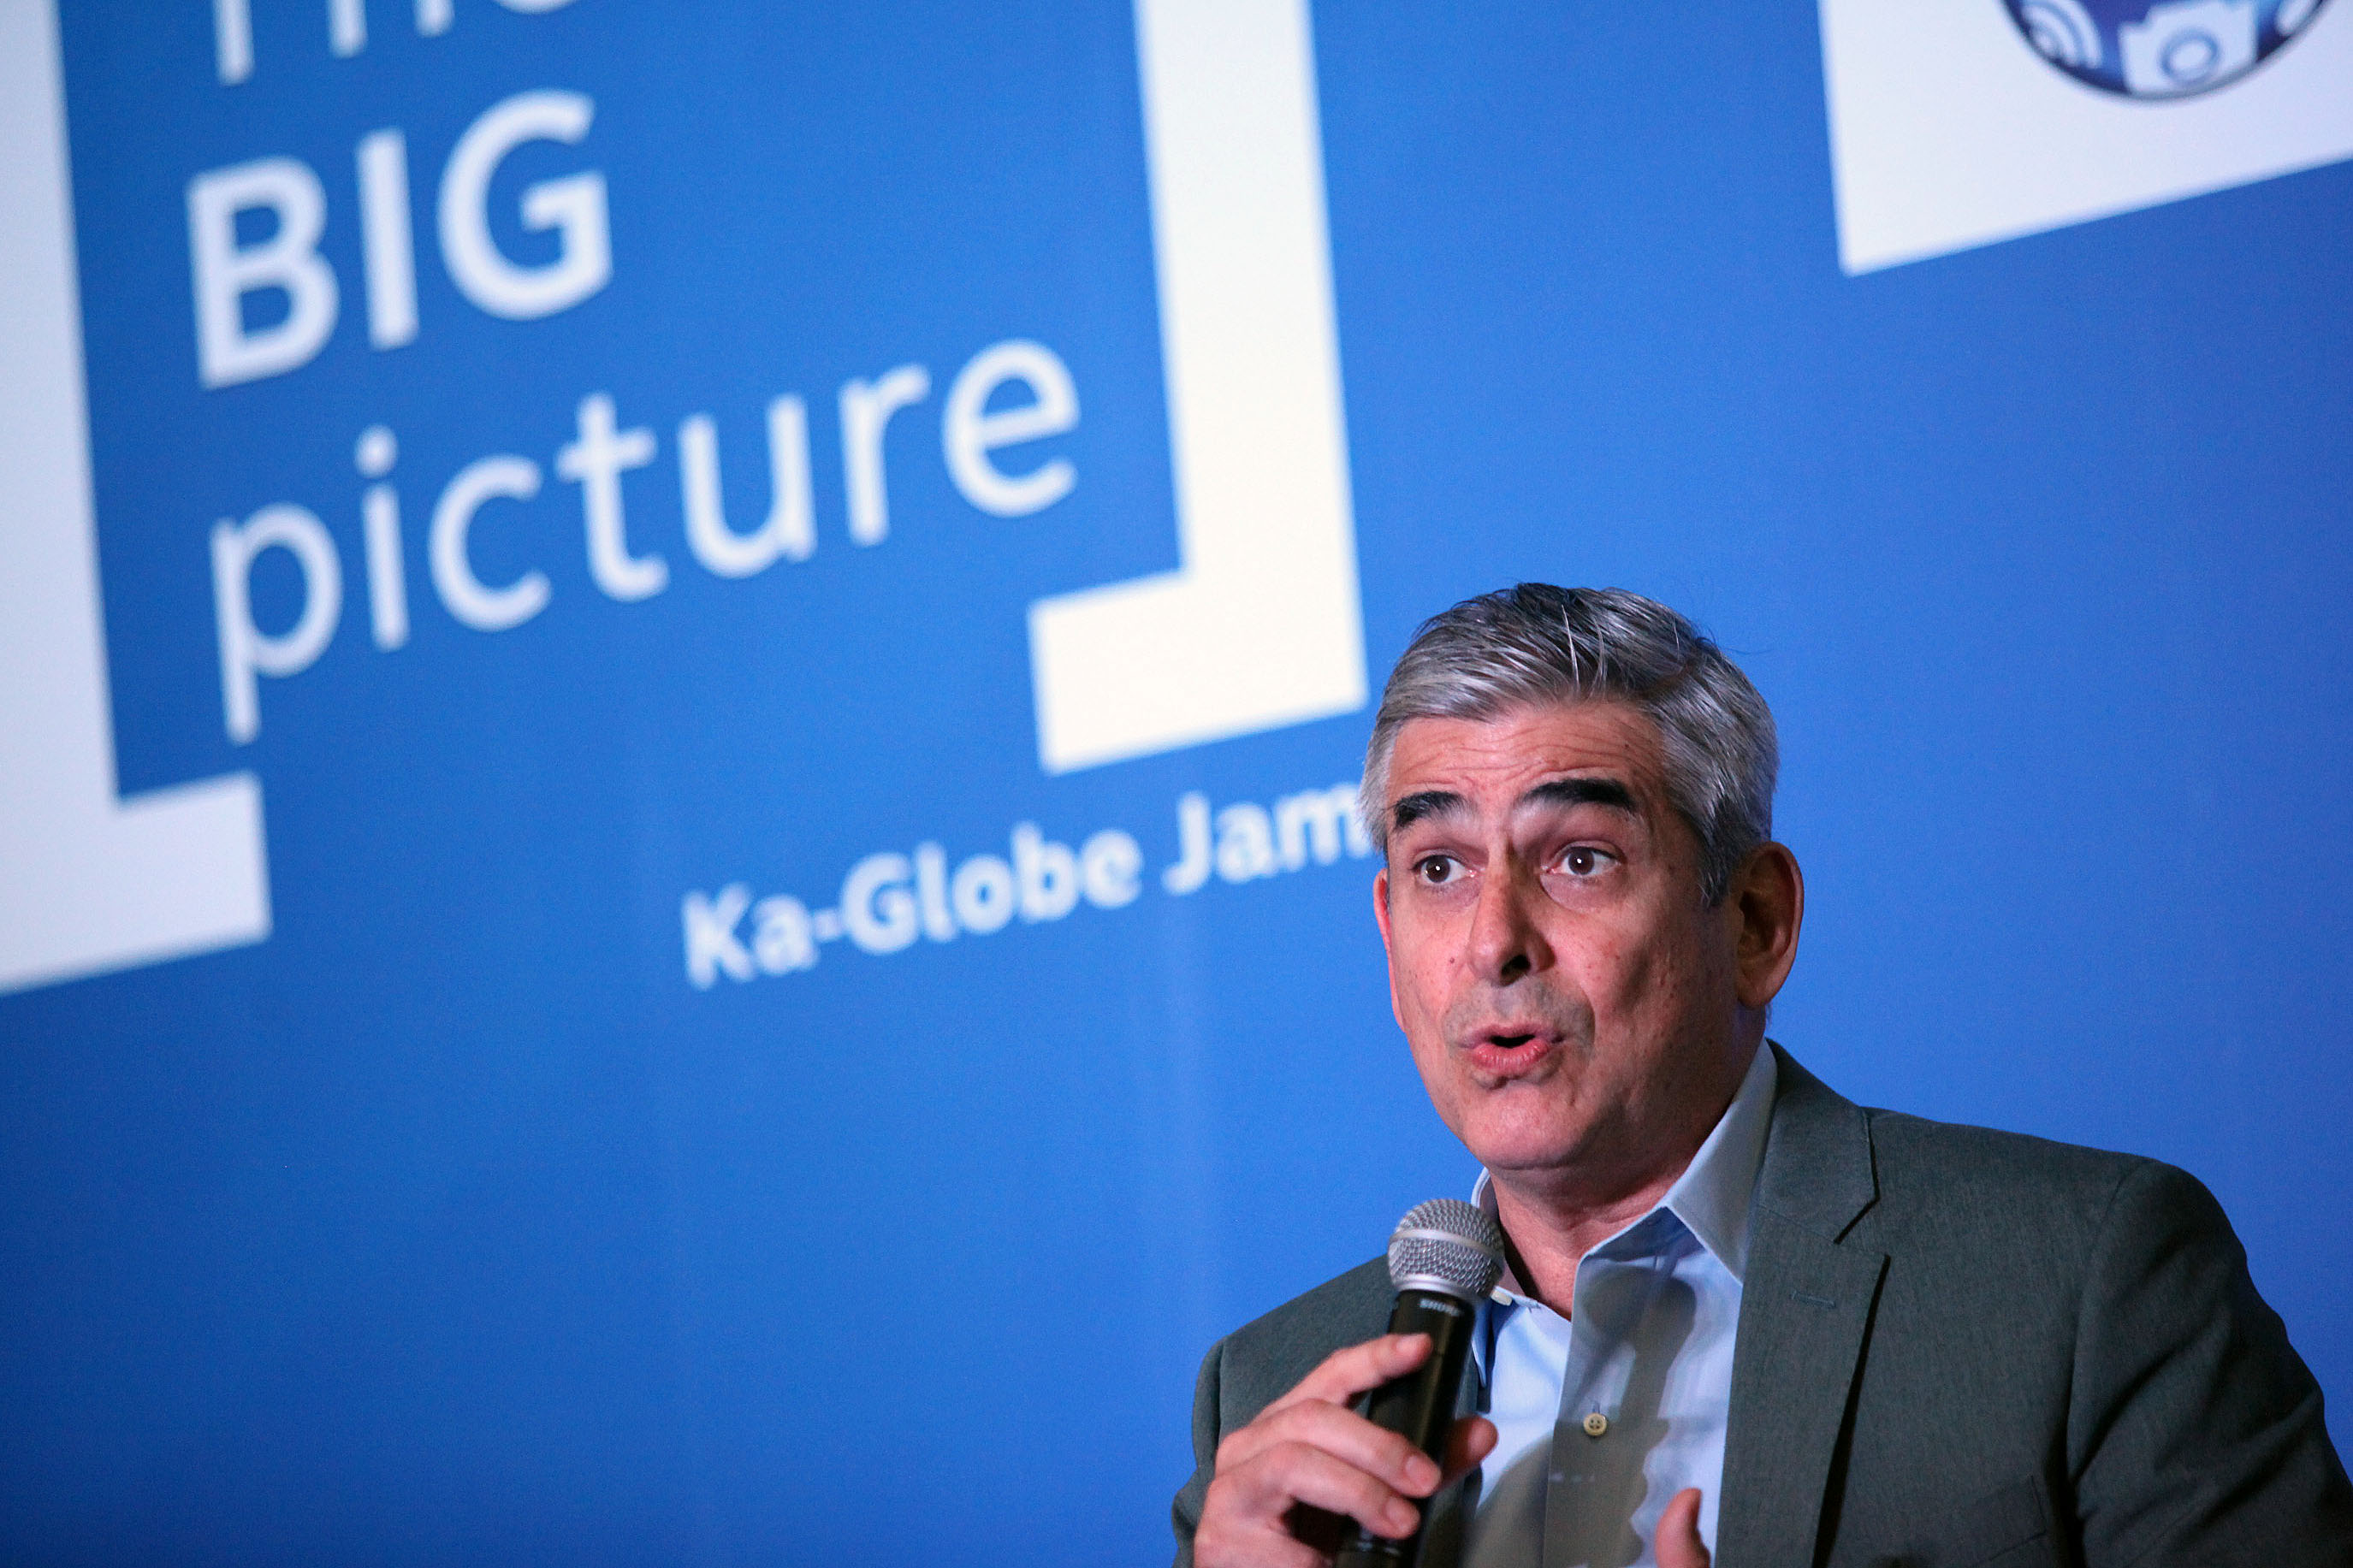 LOOKING AHEAD. 'Does that person make you feel good about the future?' Zobel de Ayala on choosing a presidential candidate. Photo by Josh Albelda/Rappler